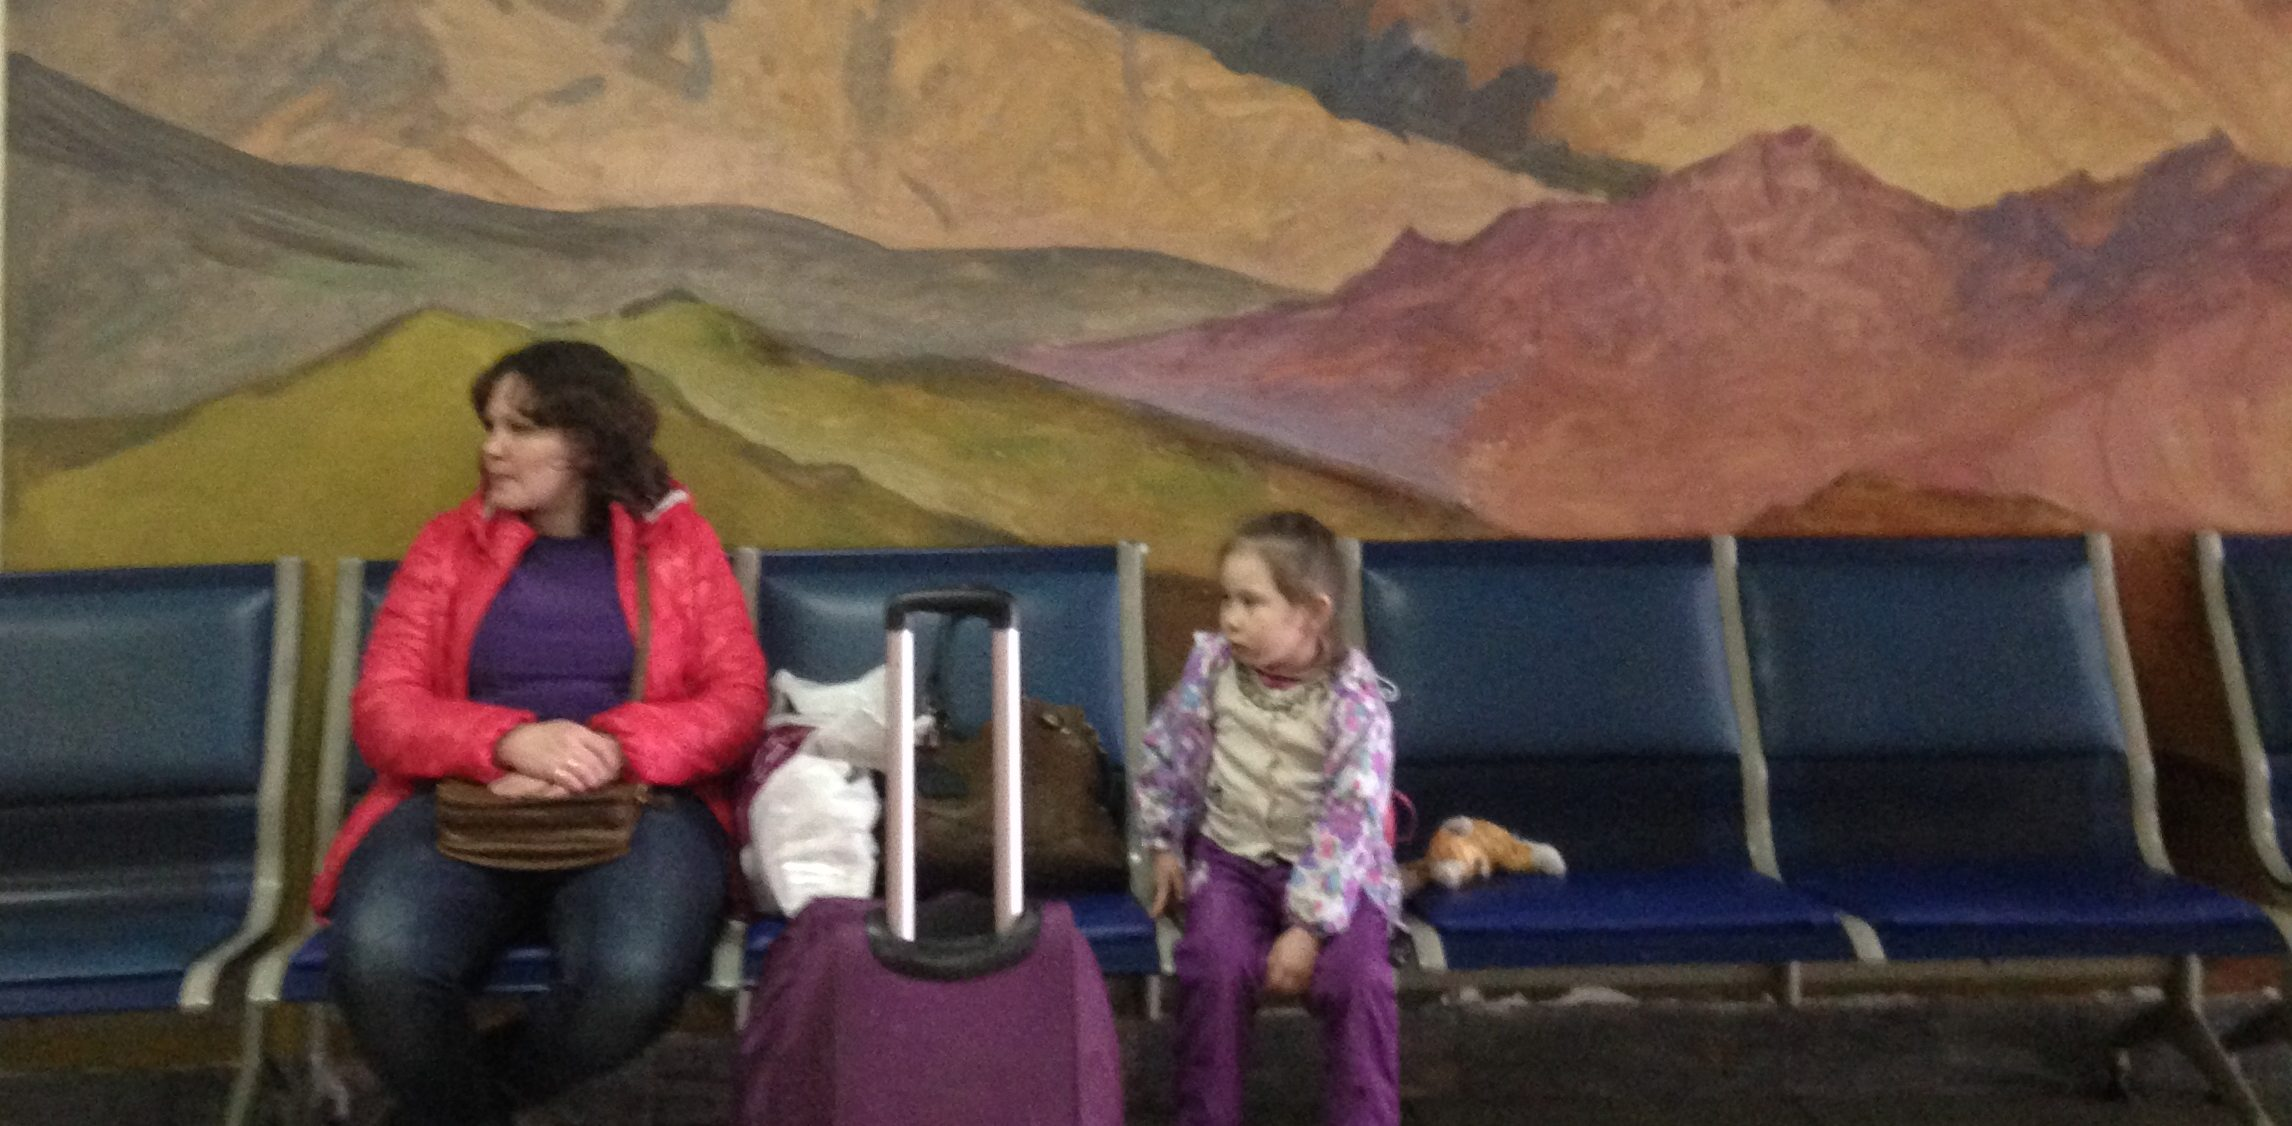 a woman and a child in an airport